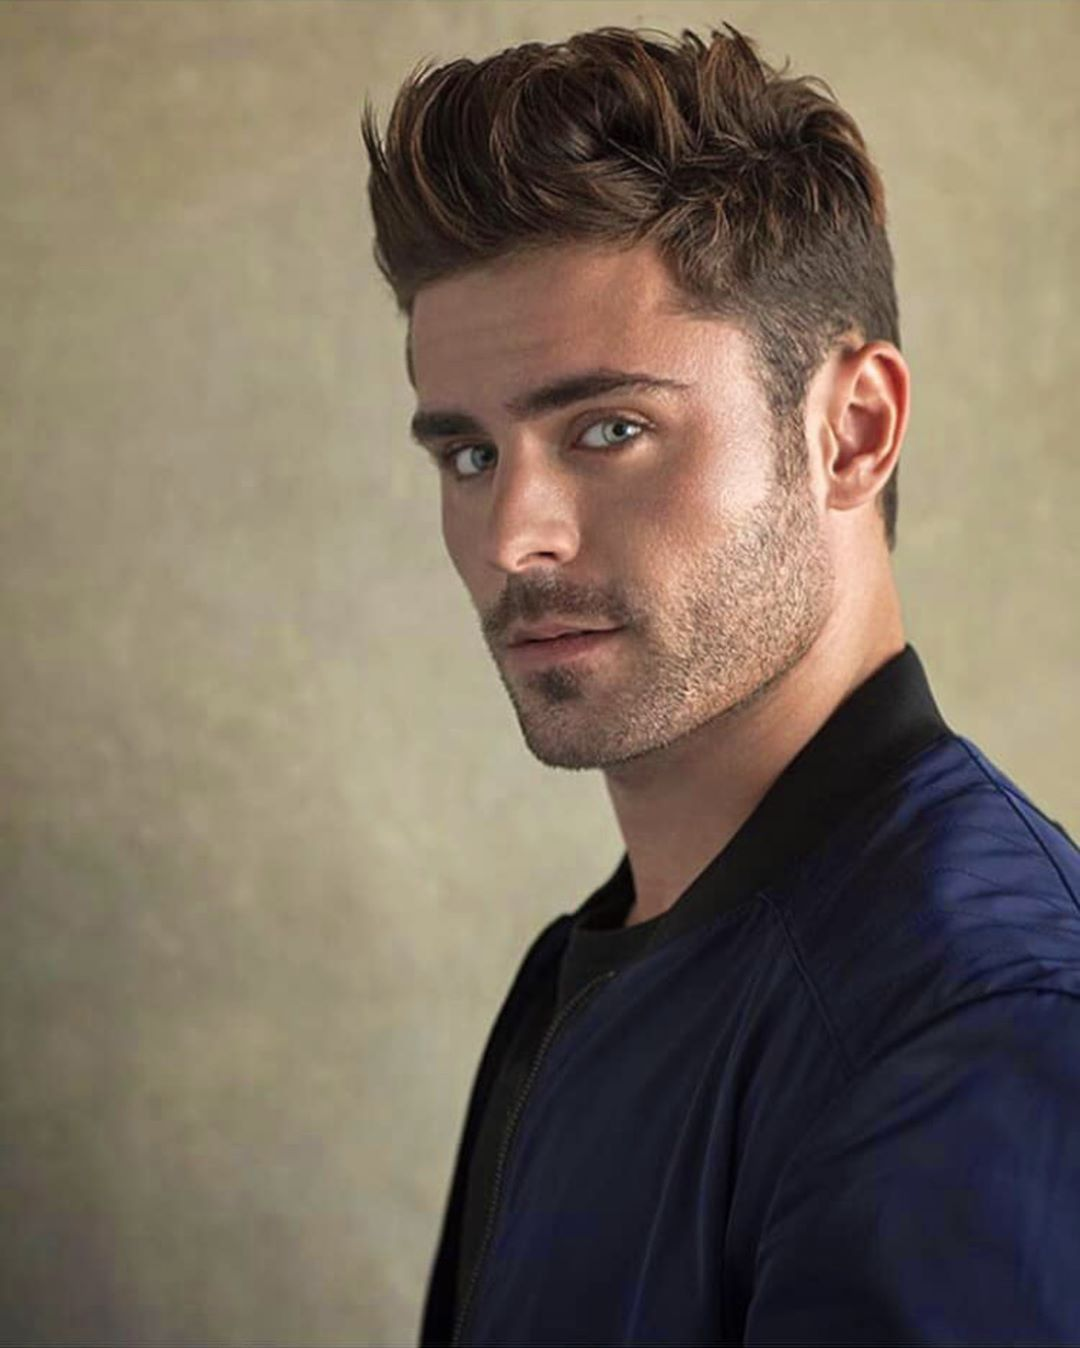 Instagram Post By Zac Efron Fans Apr 3 2019 At 3 07am Utc Zac Efron Hair Zac Efron Style Zac Efron